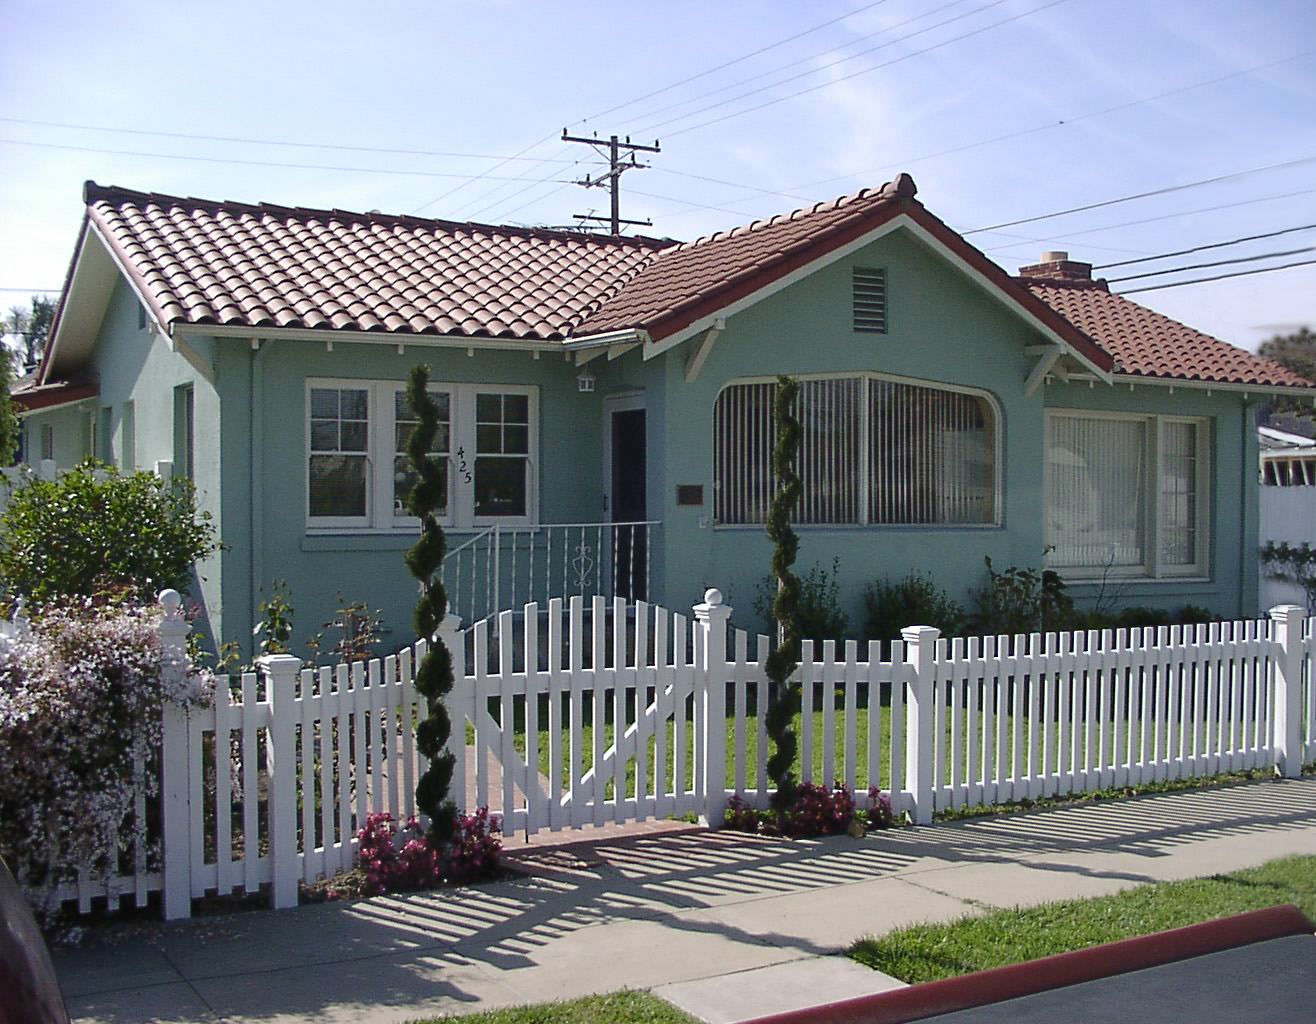 House with a white picket fence in the front yard